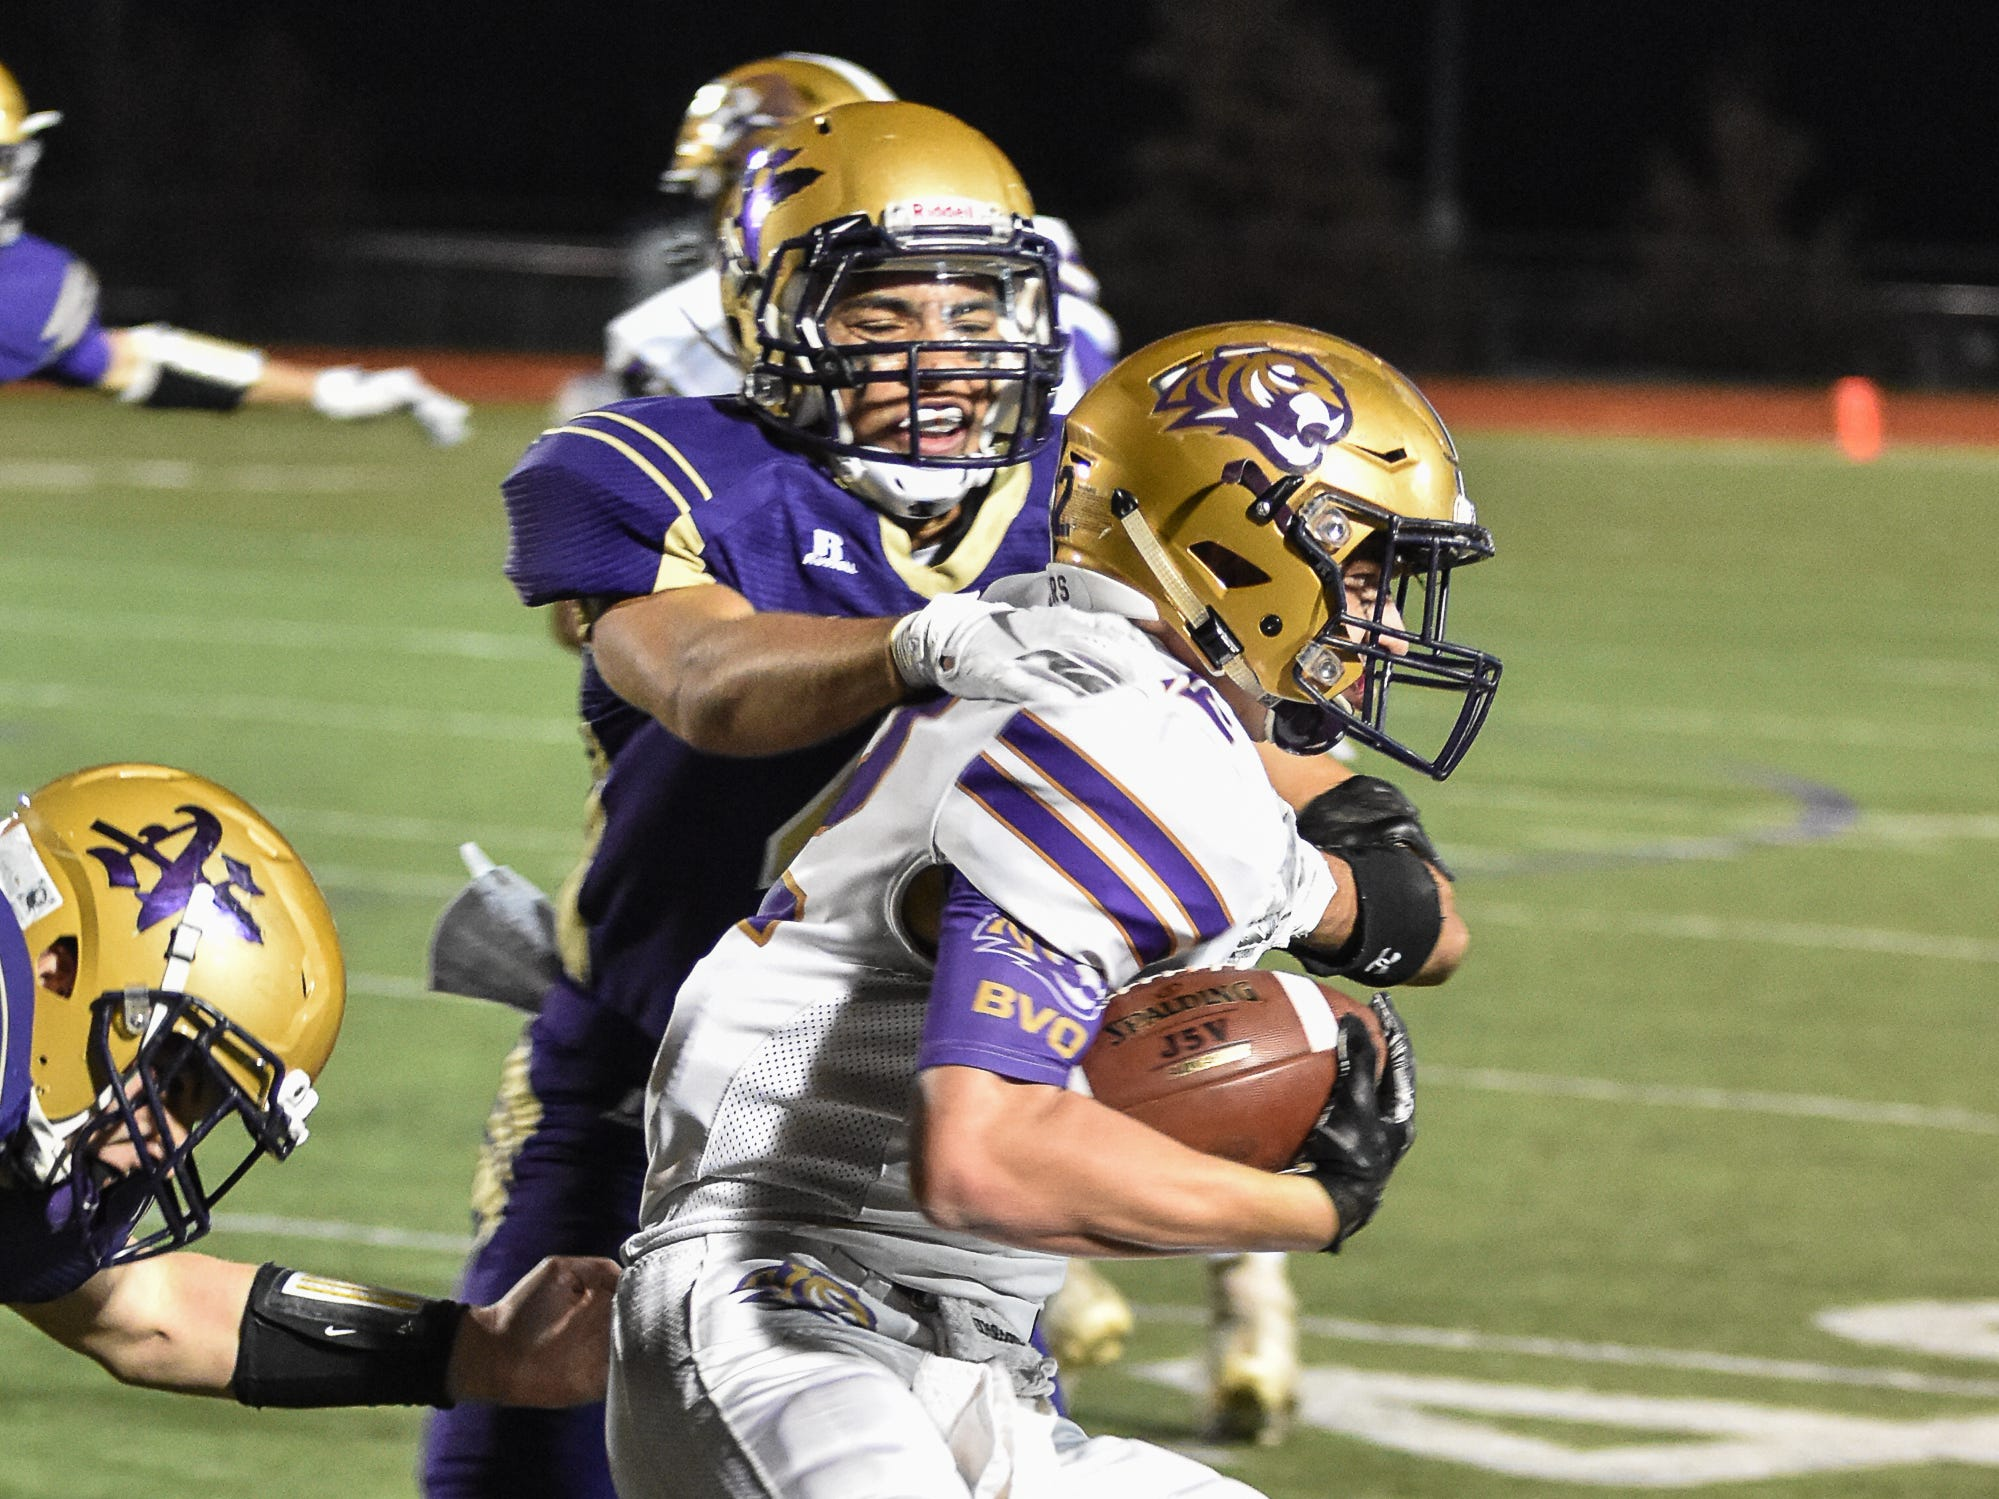 Norwalk's Nate Spurr and Dylan Wolfe tackle Spencer's Isaac Pingel during a first-round playoff game Friday in Norwalk. Spencer ended Norwalk's season Oct. 26, 2018, with a 24-20 win in the first round of the Class 3A playoffs.